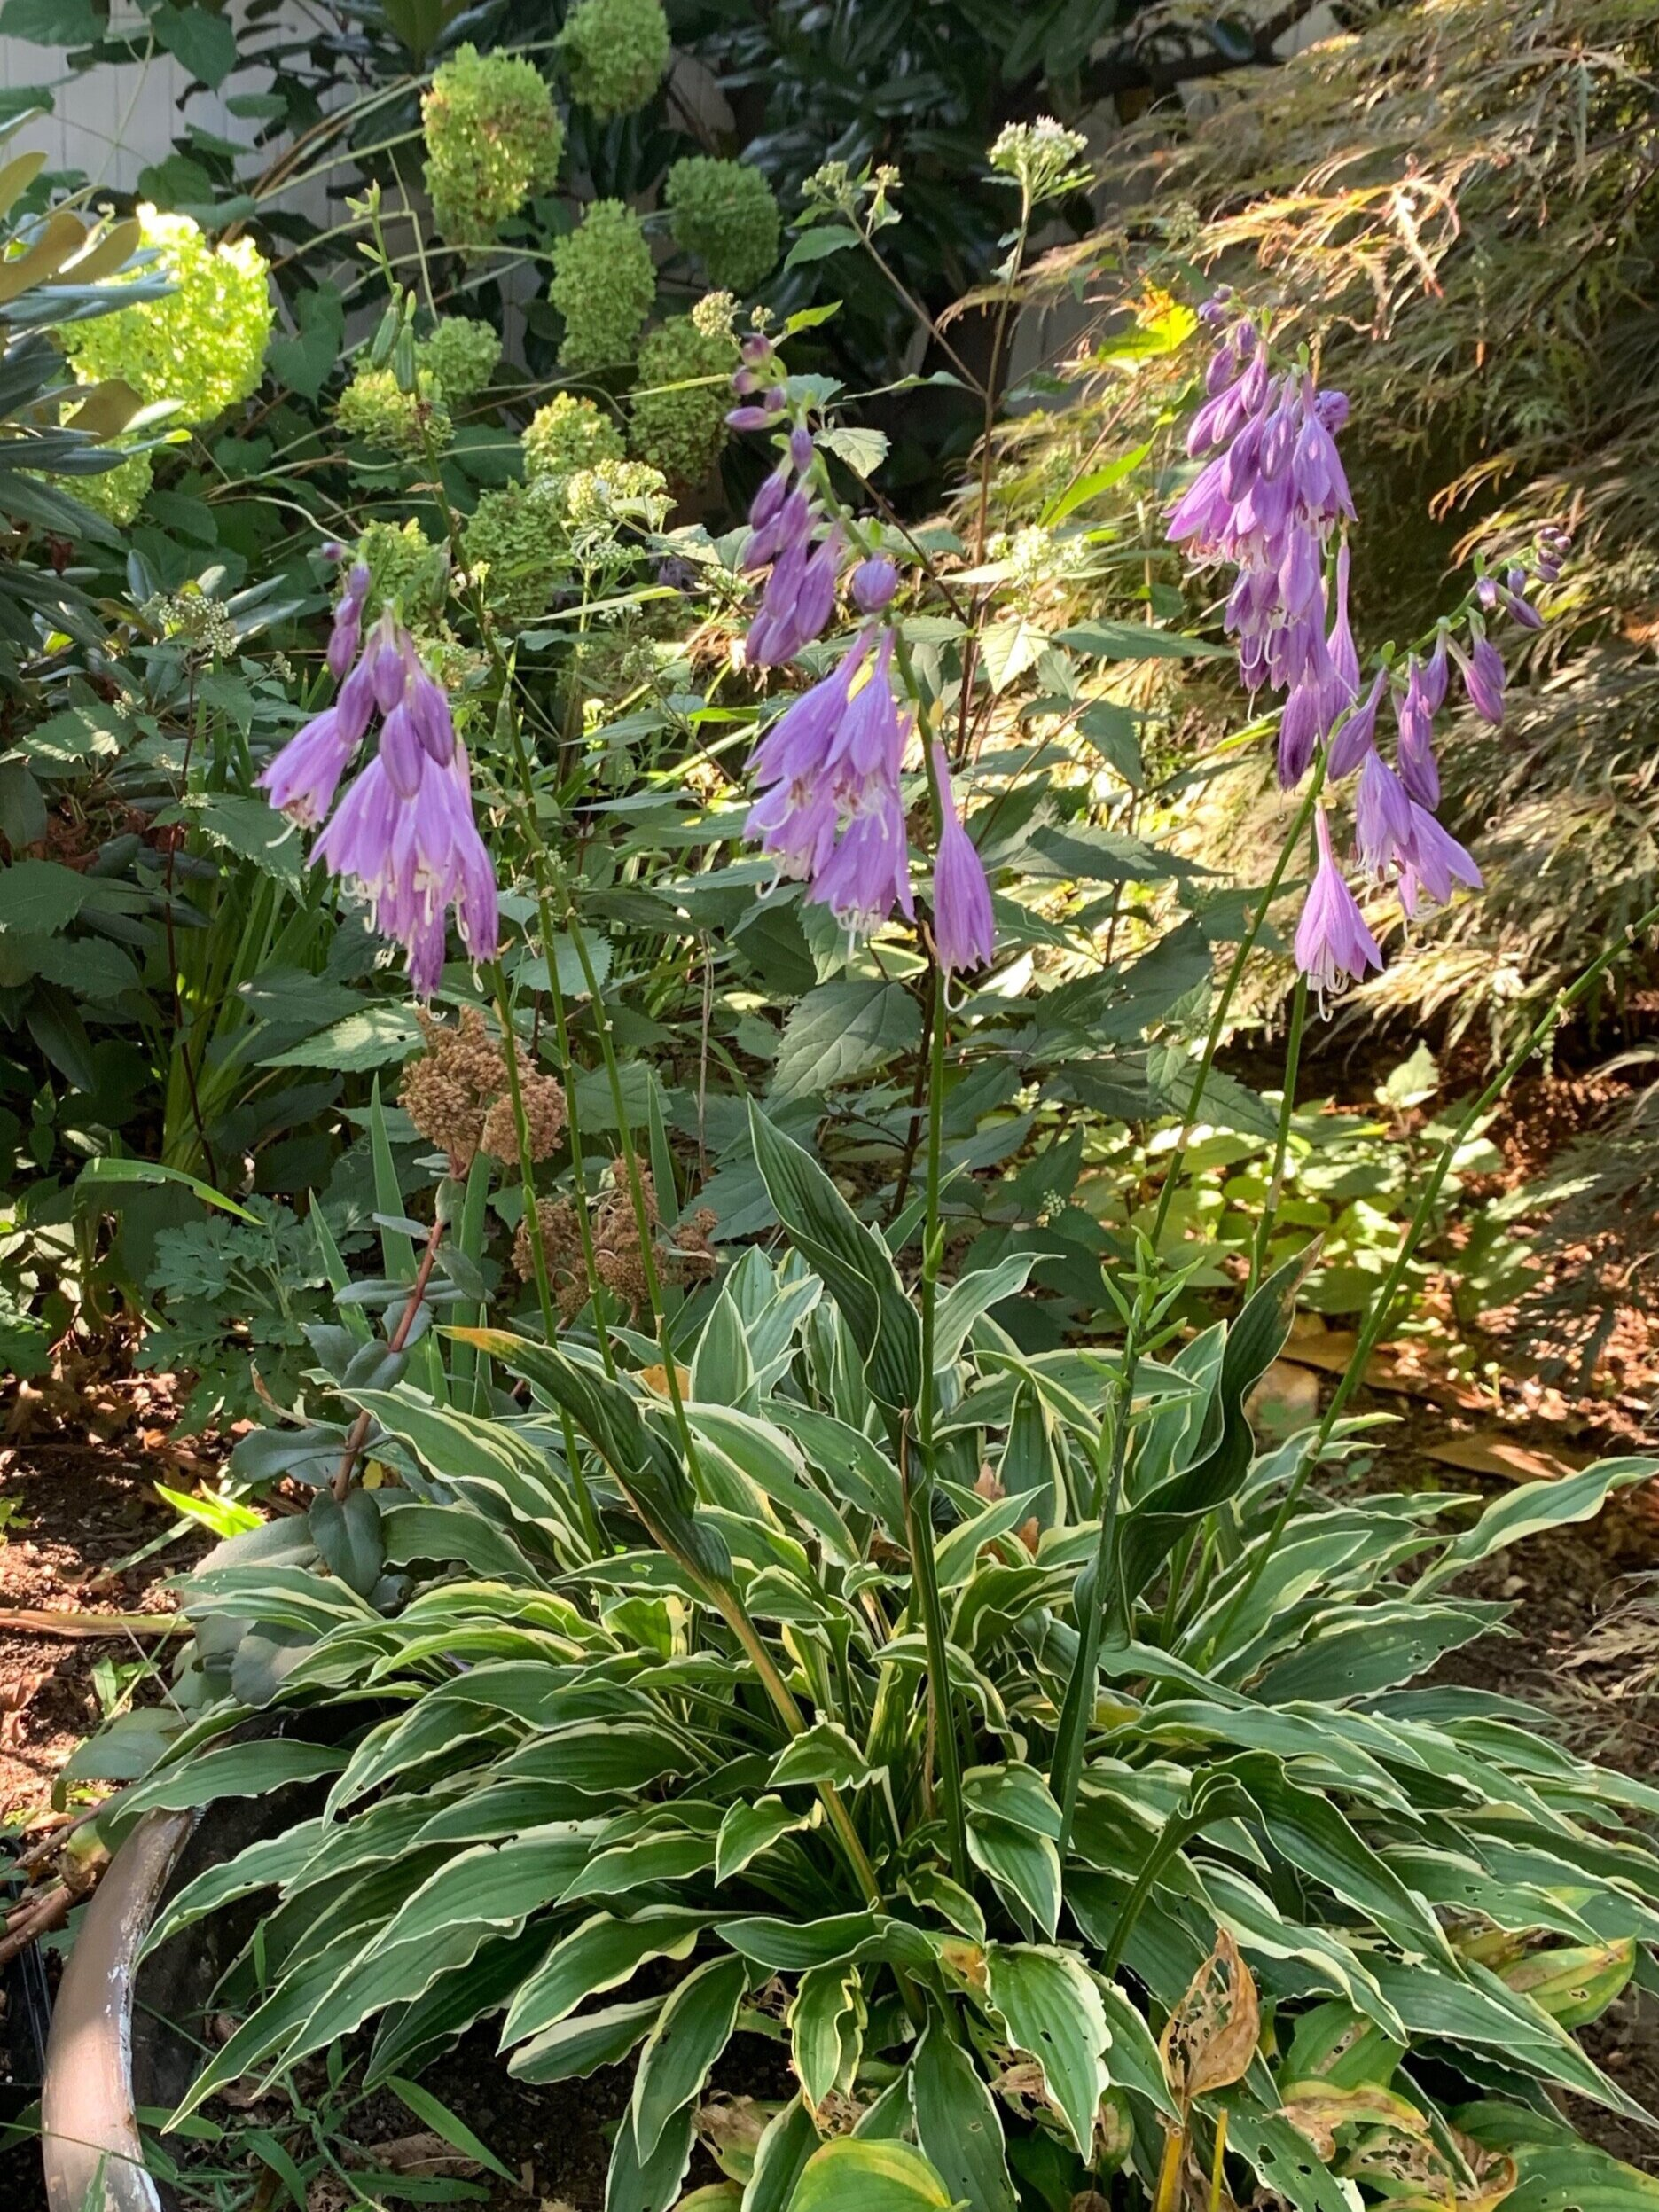 Hosta Blooms in a Container